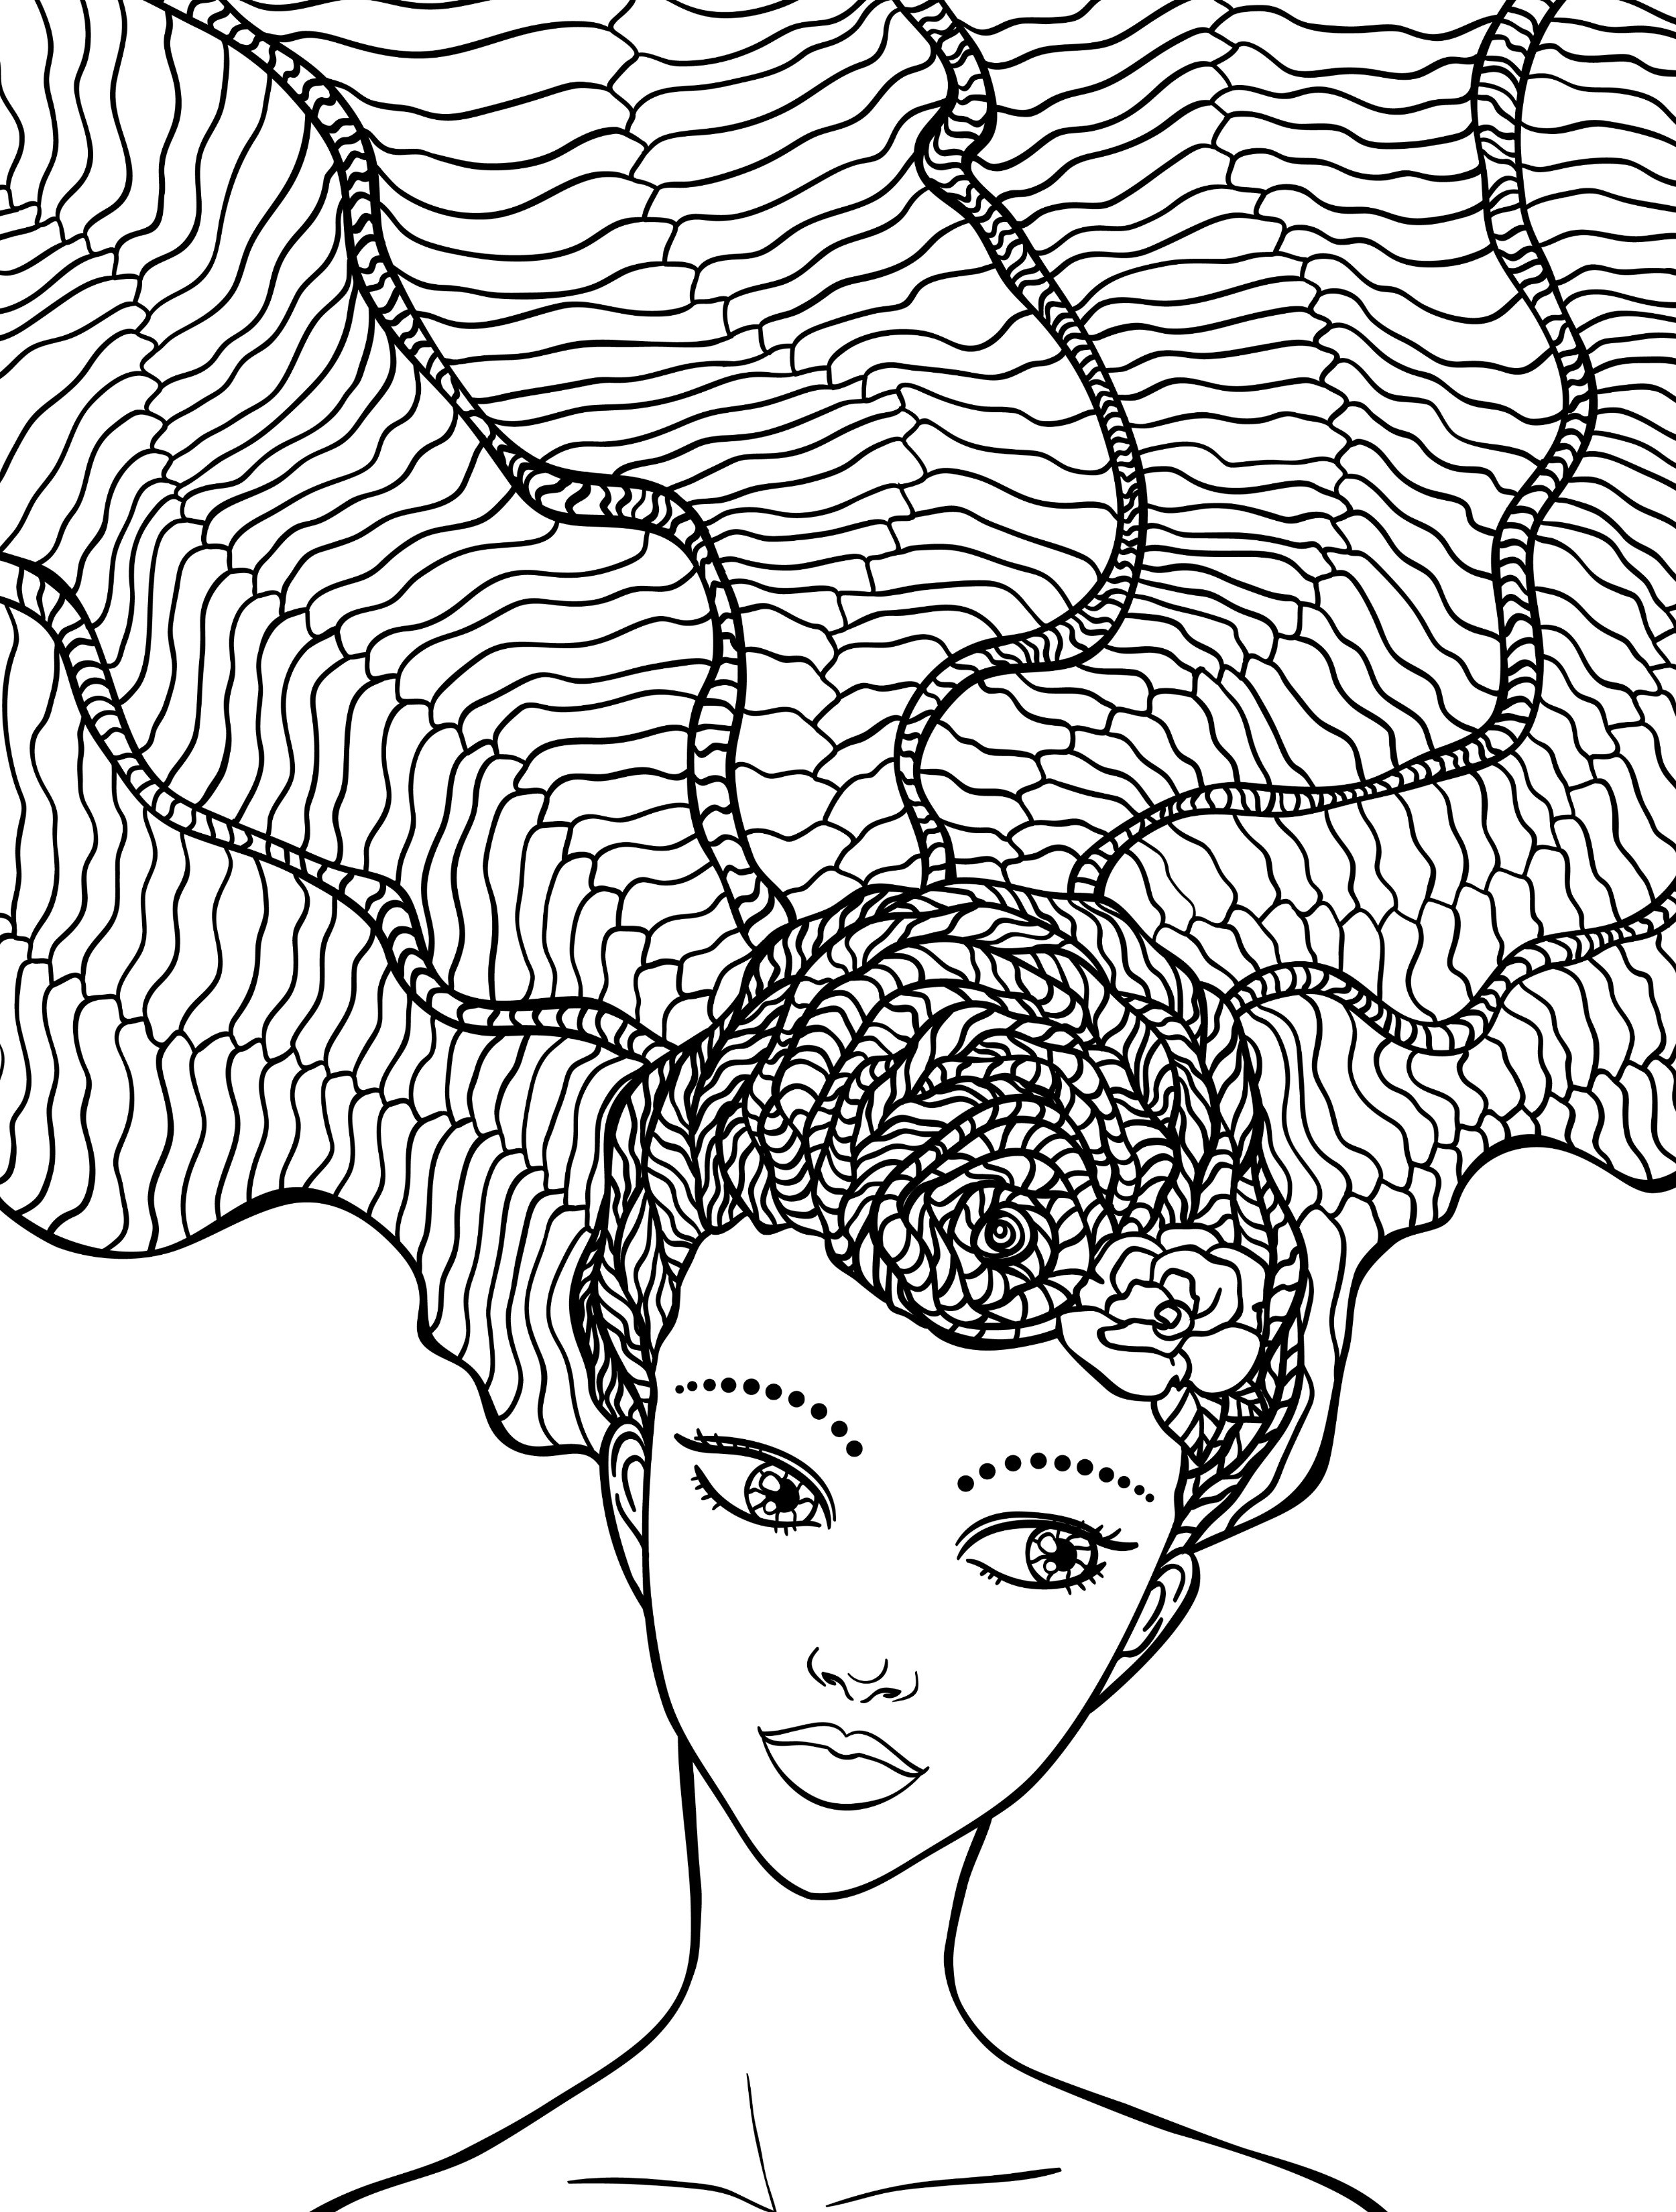 hair colouring pages black girl natural hair art google search coloring books colouring pages hair